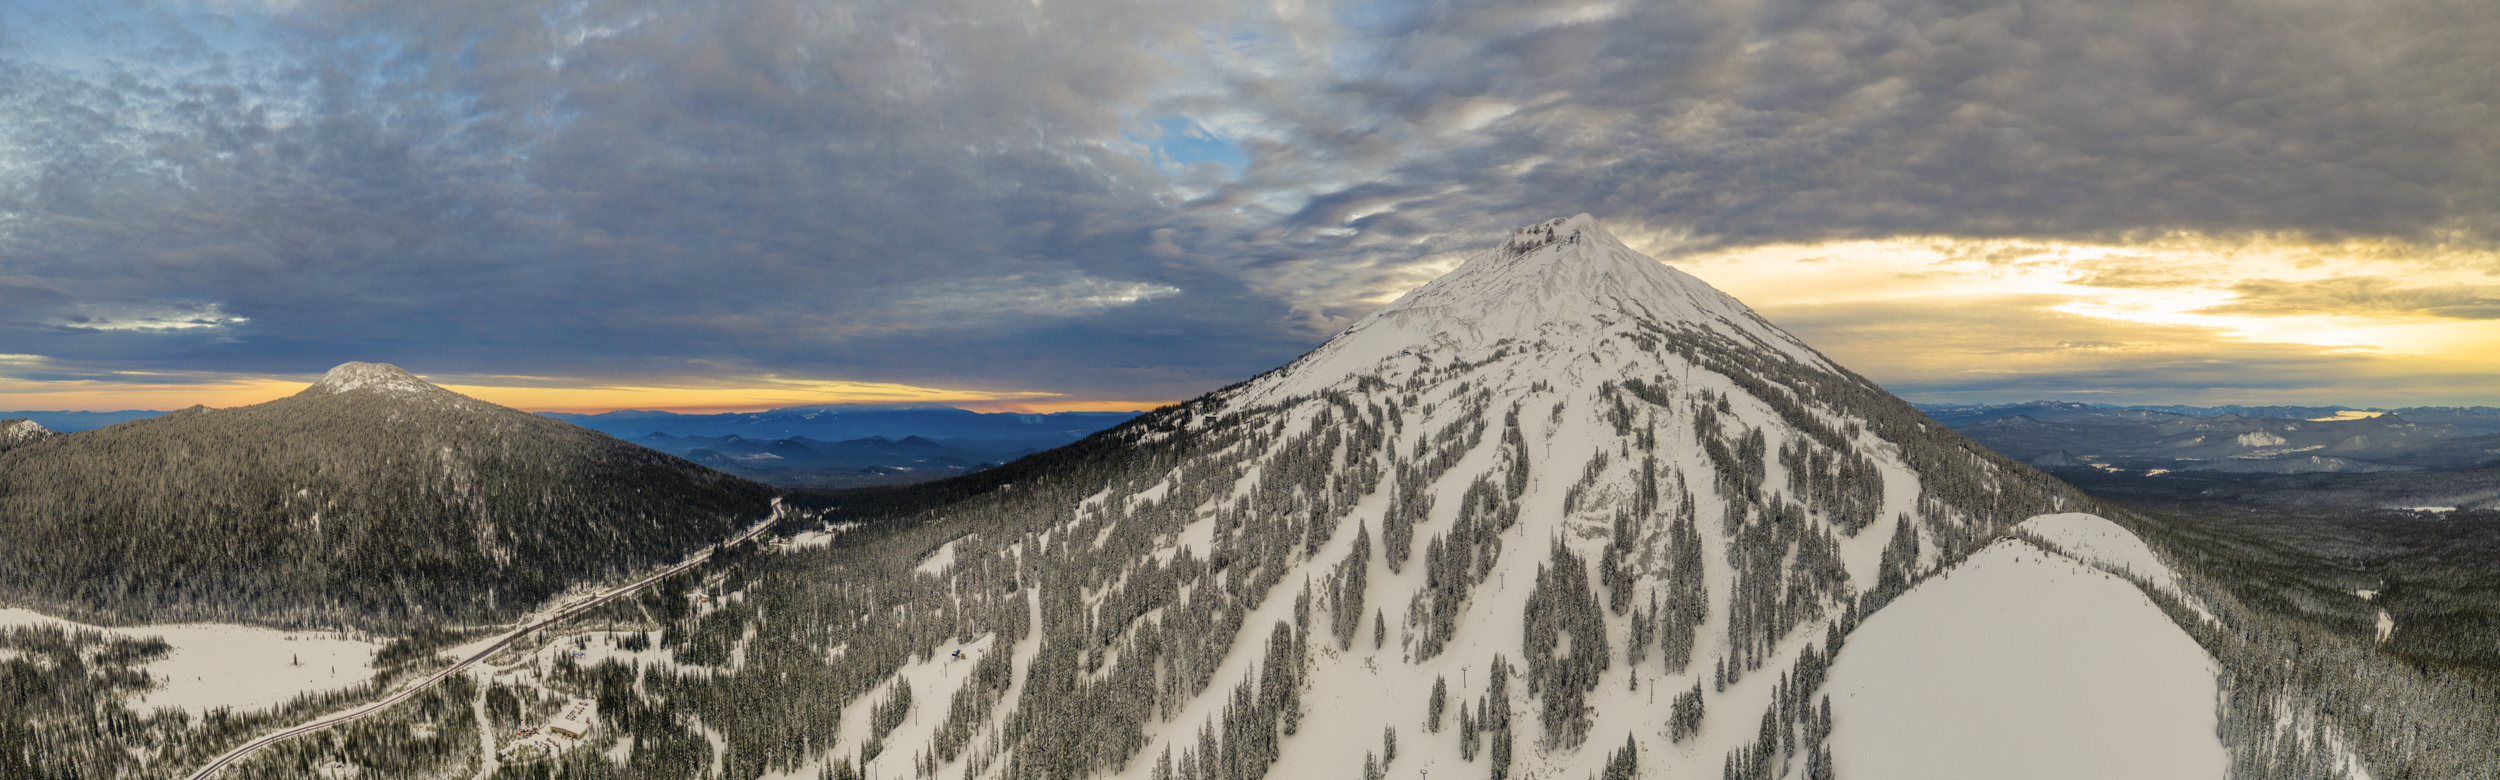 Mt. Bachelor in Central Oregon. Drone panorama.